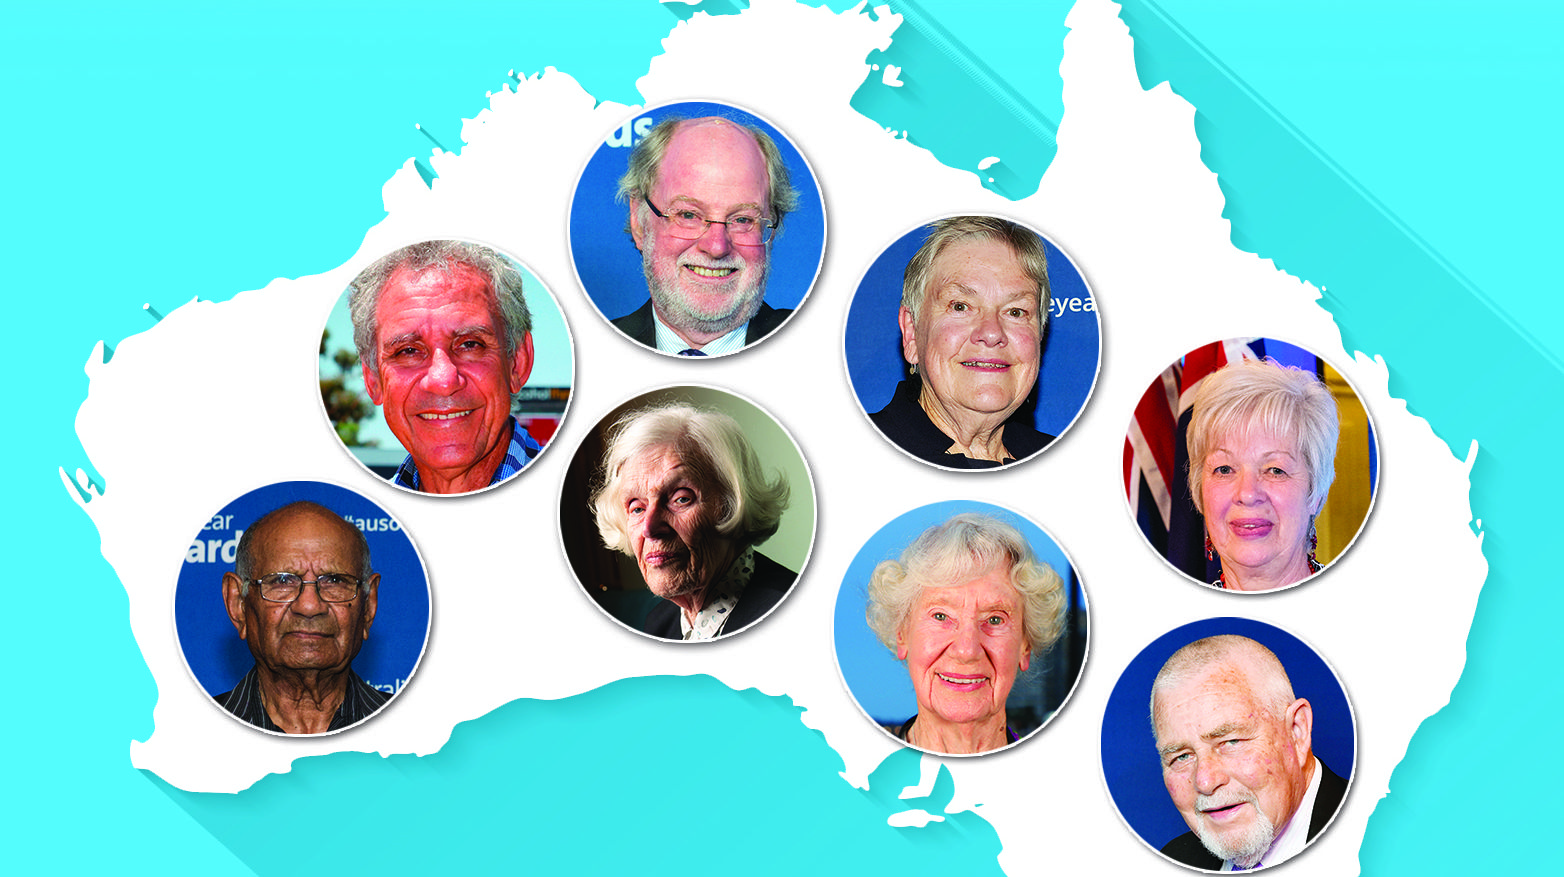 TOP SENIORS: Meet the Australians nominated for the 2019 Australian Senior of the Year Award.